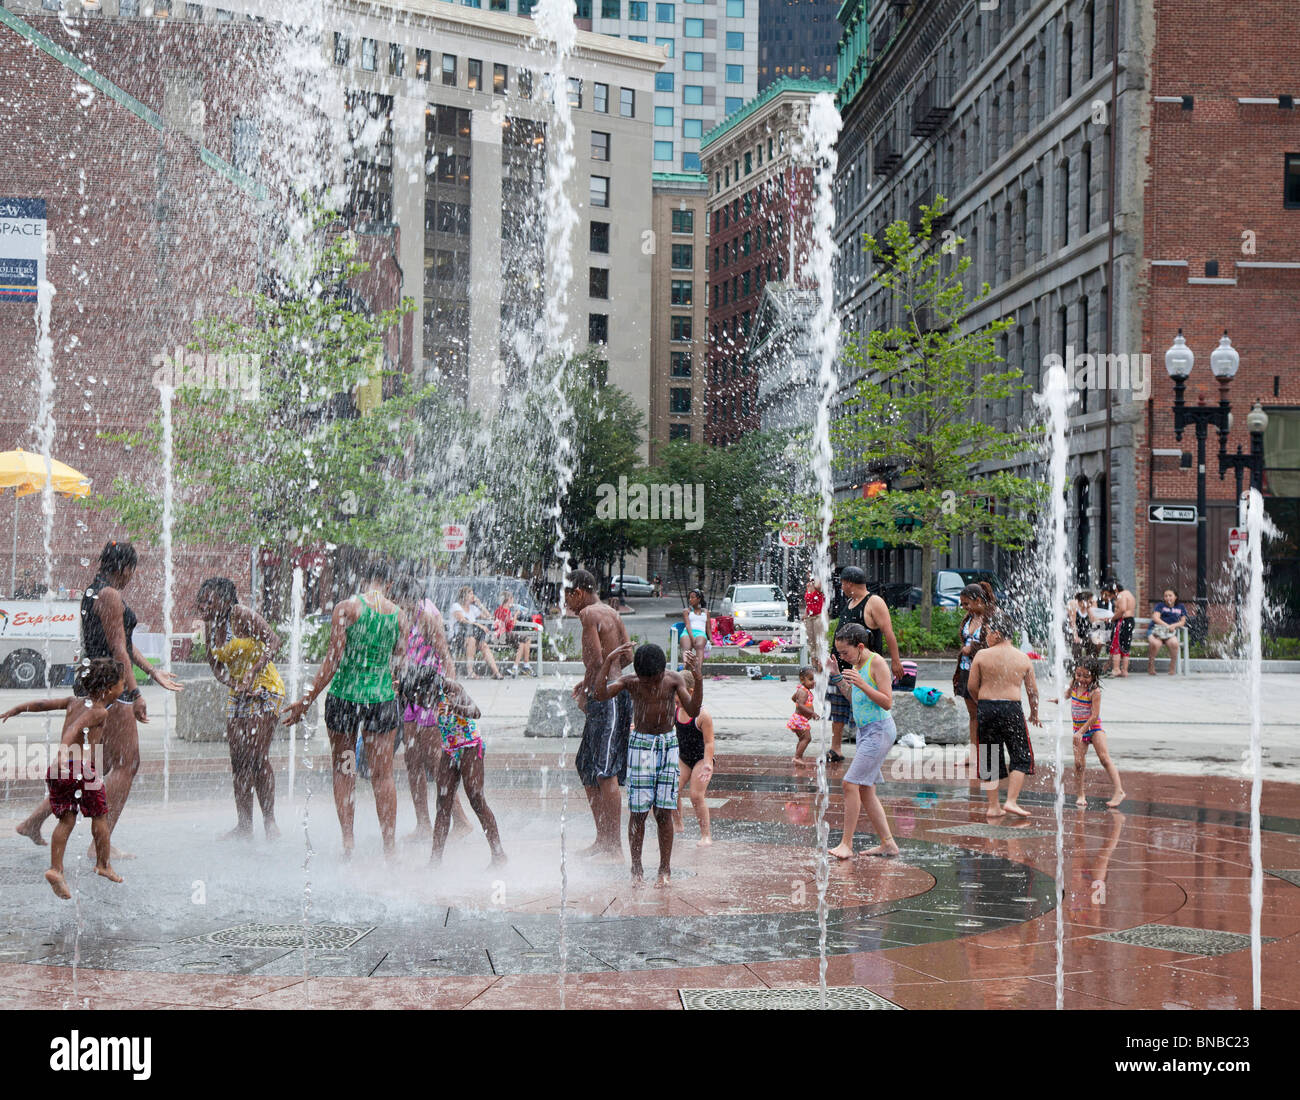 Boston, Massachusetts - Children play in a fountain near the Boston waterfront on a hot summer evening. - Stock Image